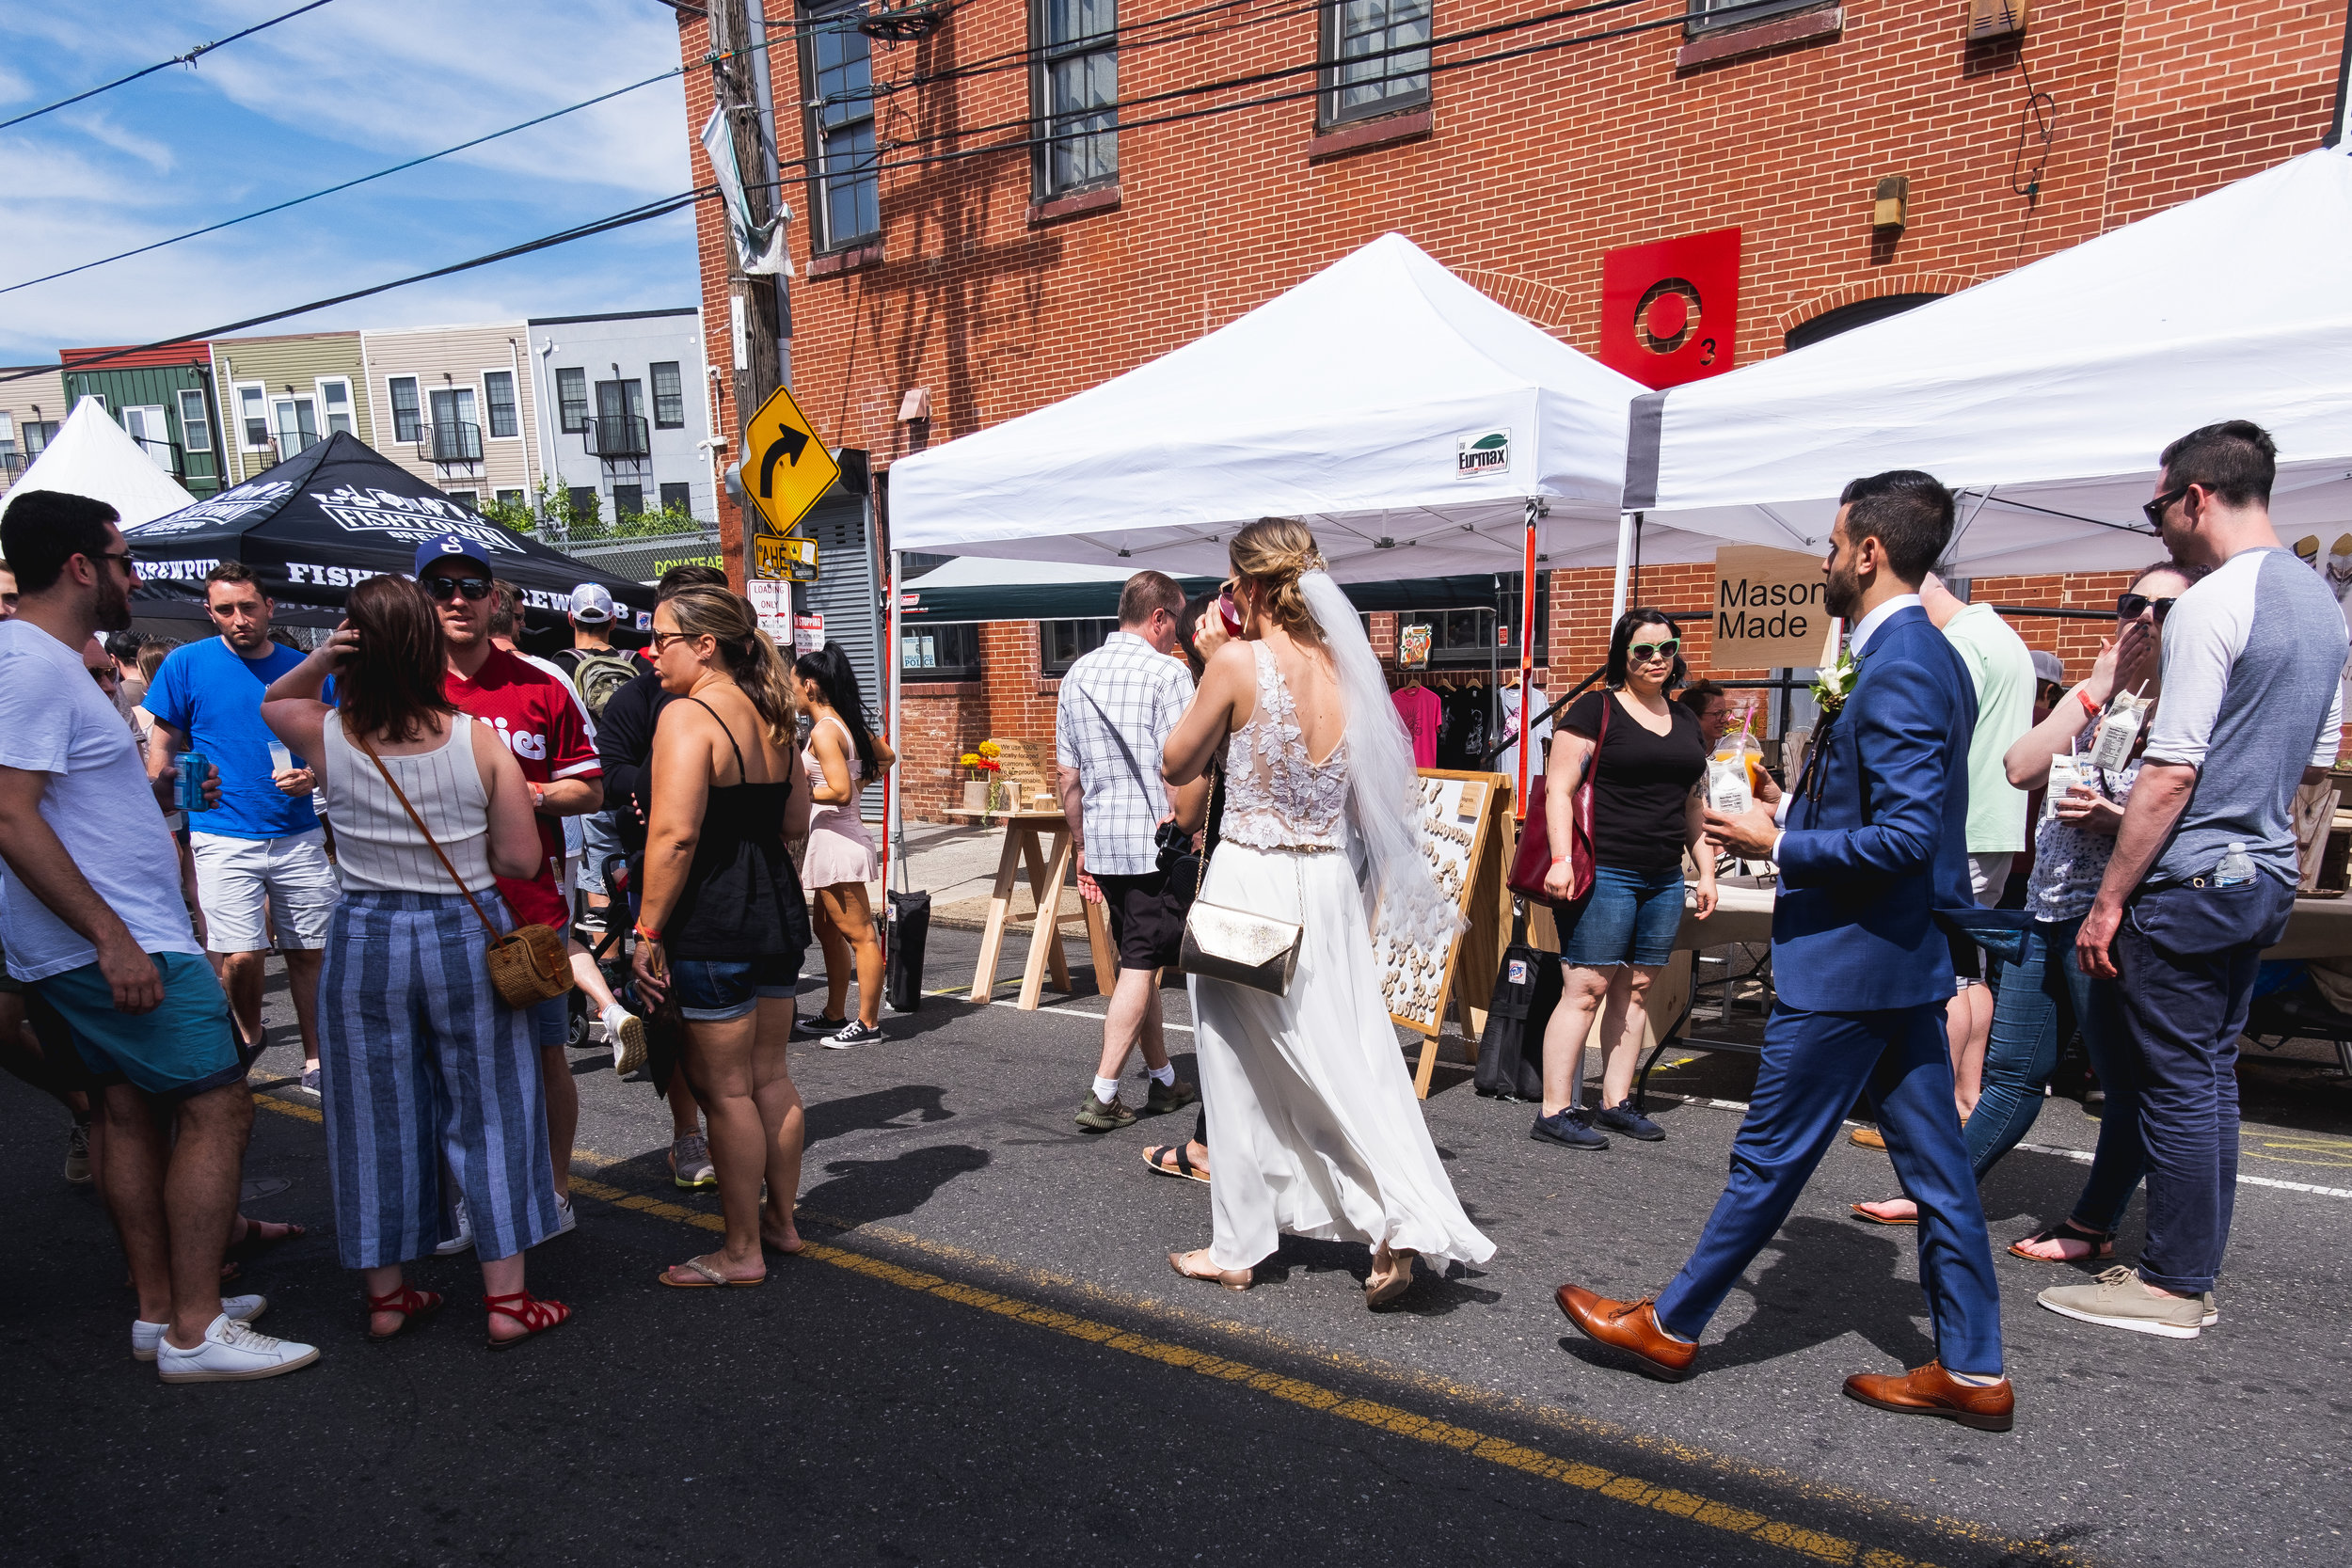 2019_PHILLY BEER WEEK_FISHTOWN FESTIVALE_EVENTS_THE PHILLY CHECKLIST-12.jpg